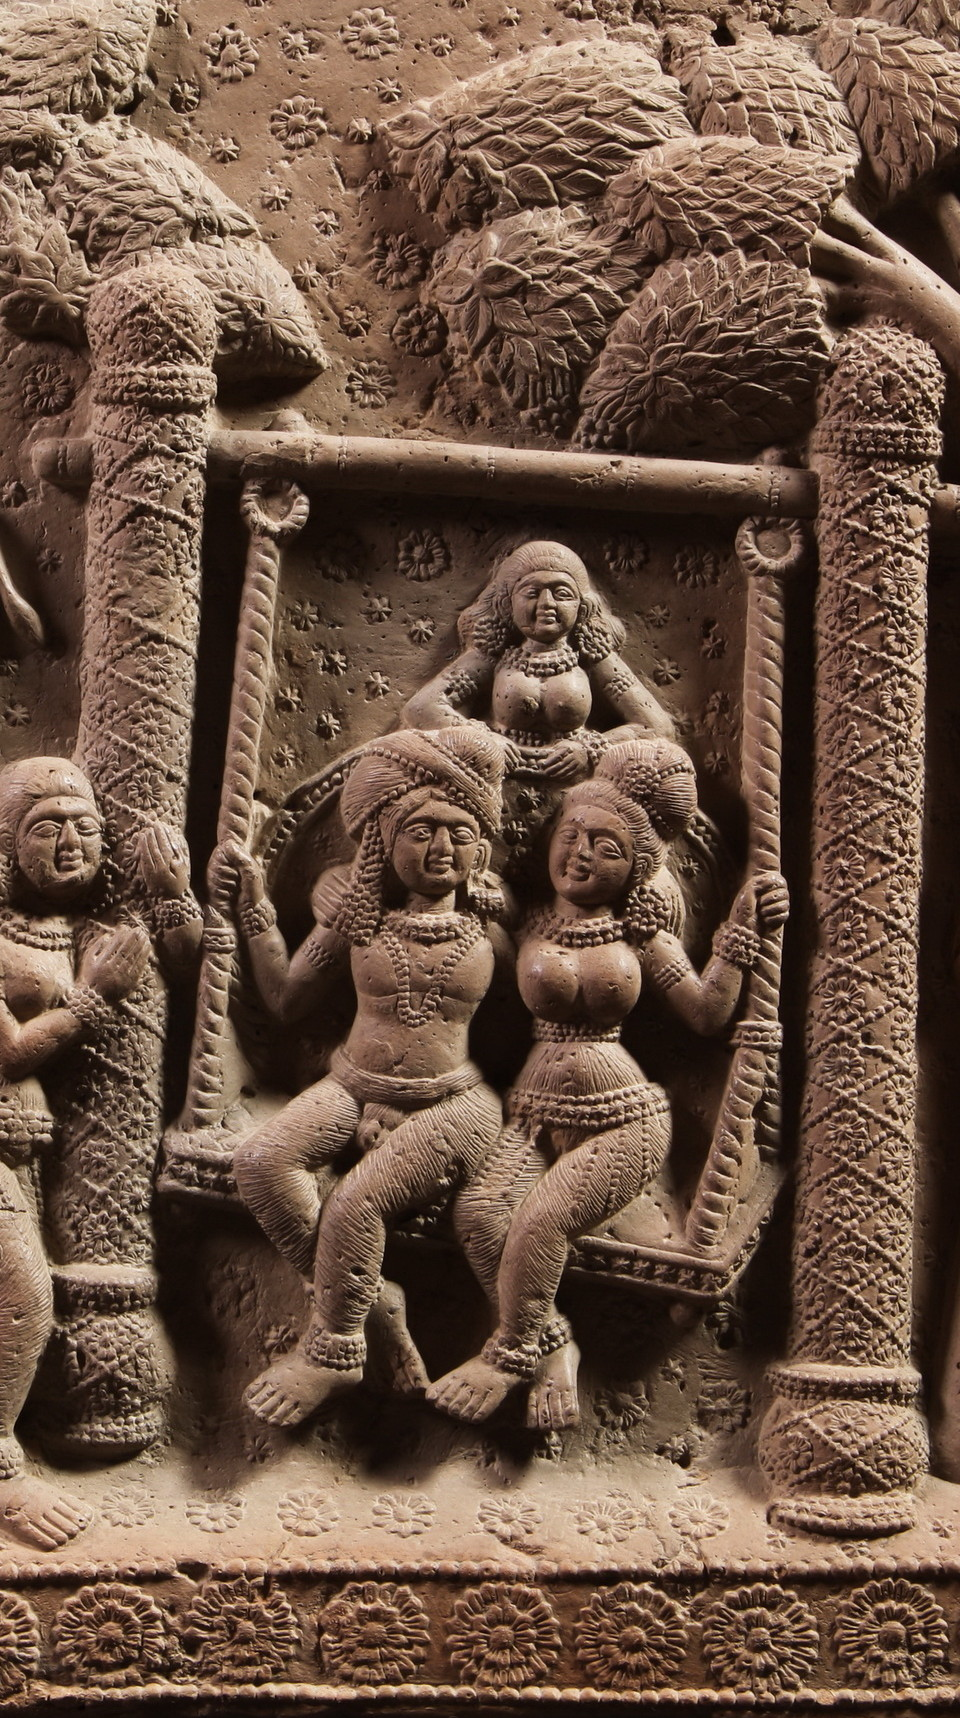 Plaque (detail) with a couple on a swing, Terracotta, Eastern India, Bengal, Chandraketugarh area, c. 1st century BCE, total height 39cm, total width 52cm